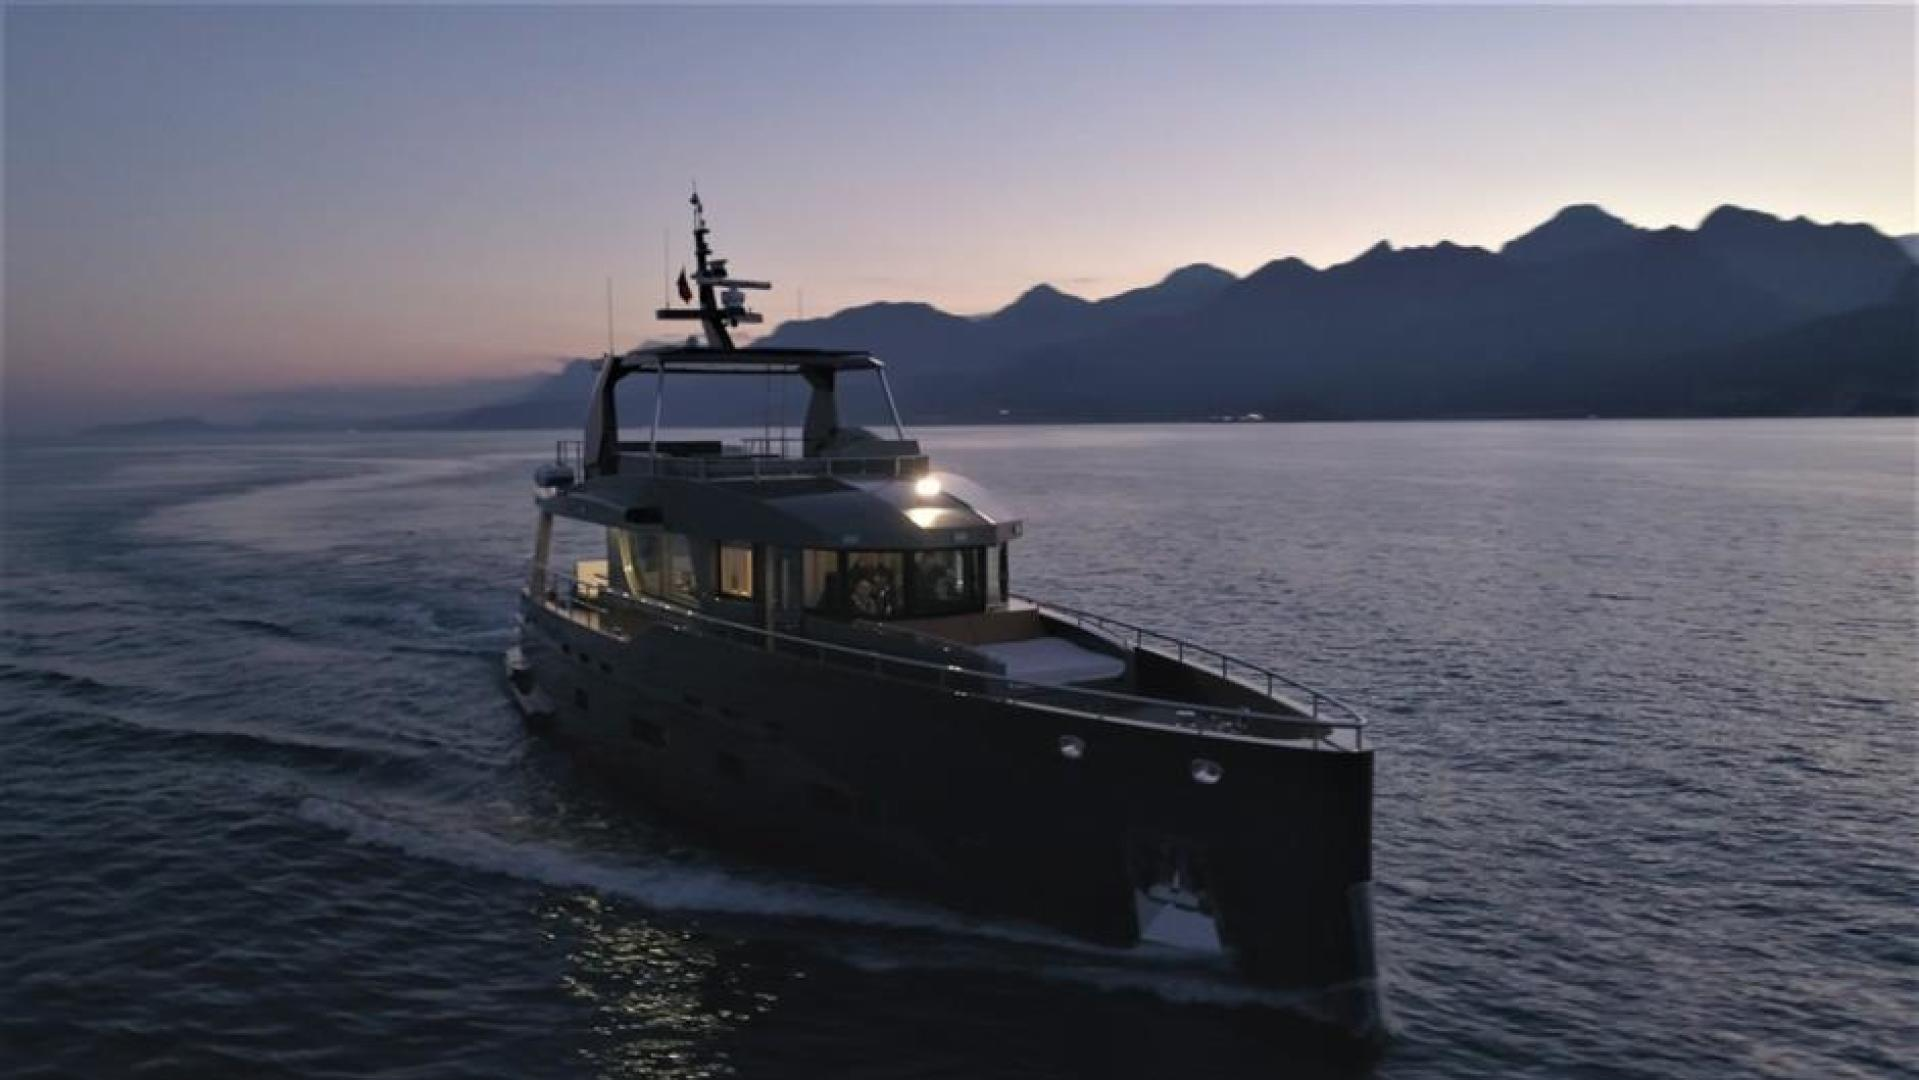 Bering-Expedition Yacht 2019-Expedition Yacht Turkey-1405111   Thumbnail